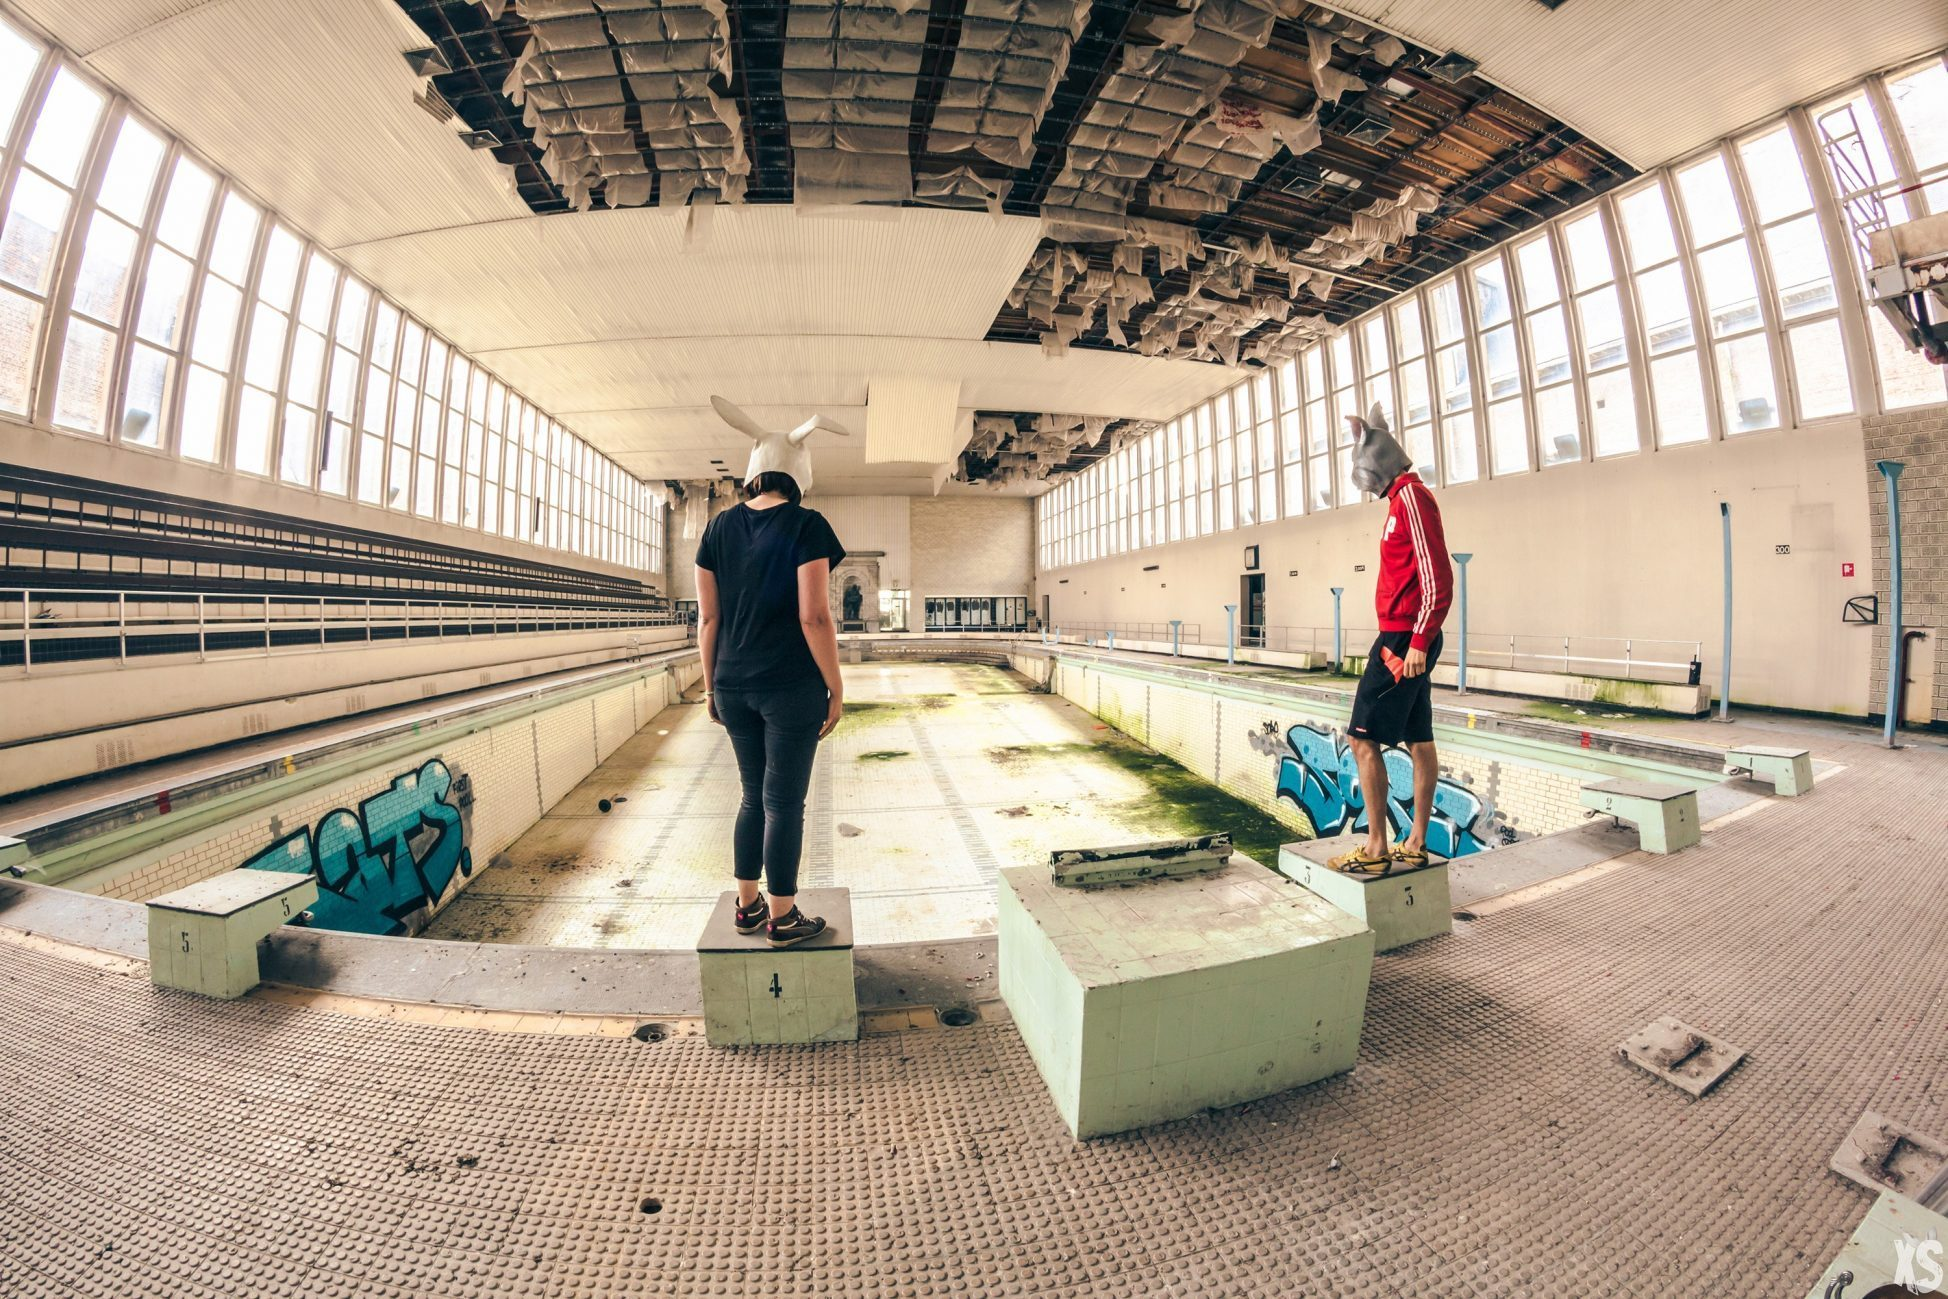 Abandoned Swimming Pool in belgium